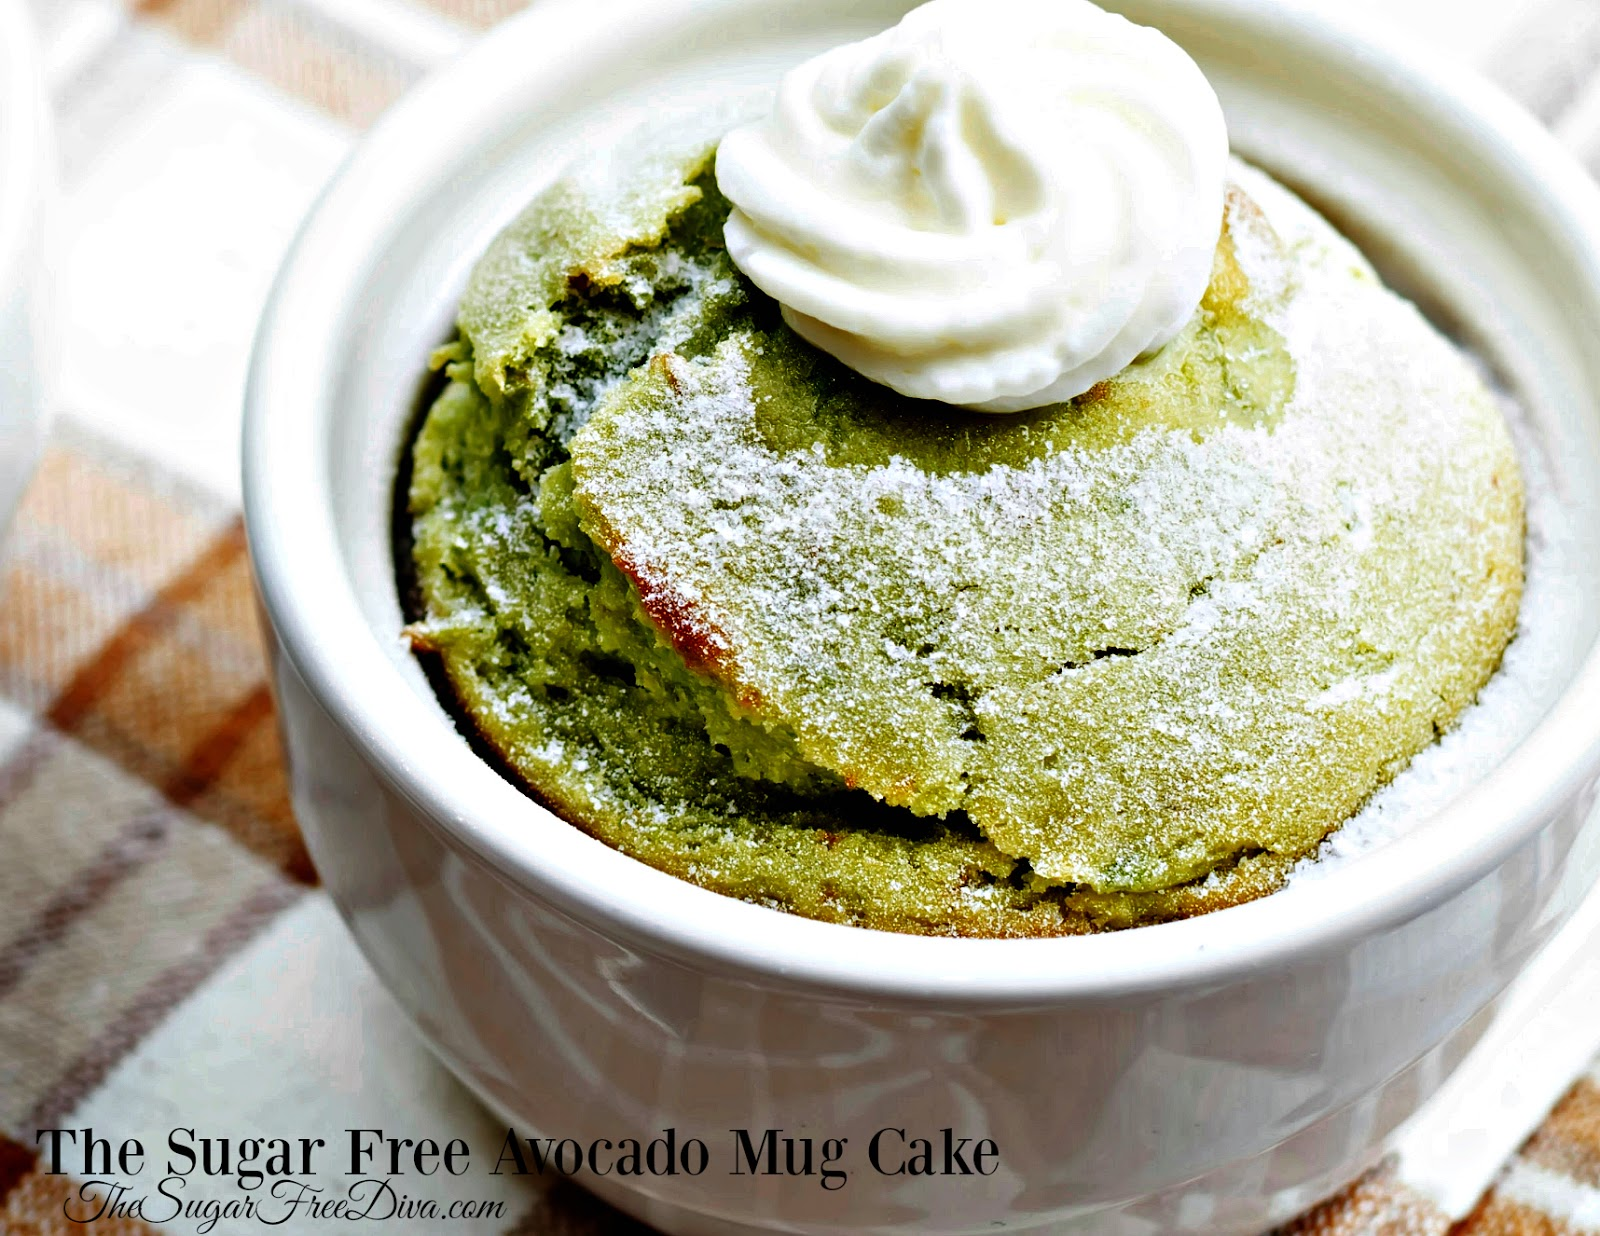 The Sugar Free Avocado Mug Cake